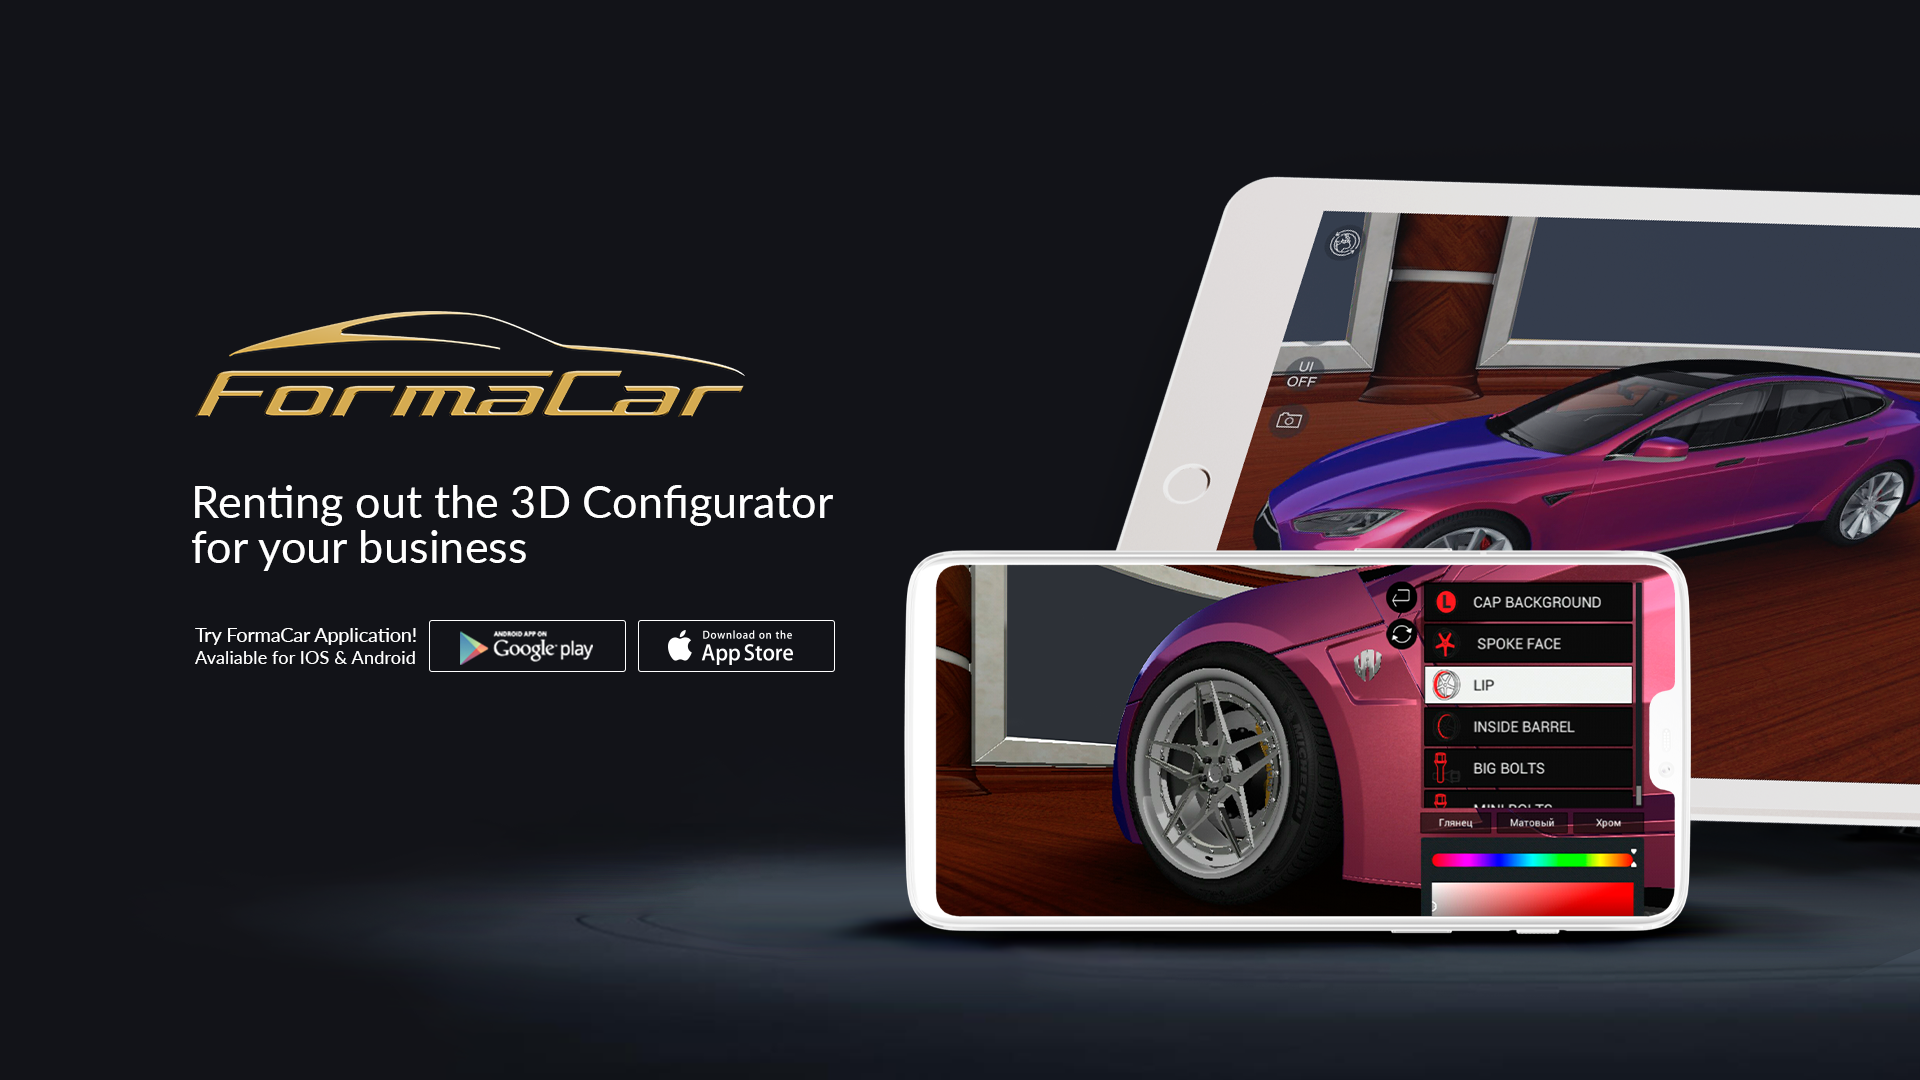 FormaCar is a unique 3D real-time car configurator with a virtually unlimited selection of cars, parts, and accessories